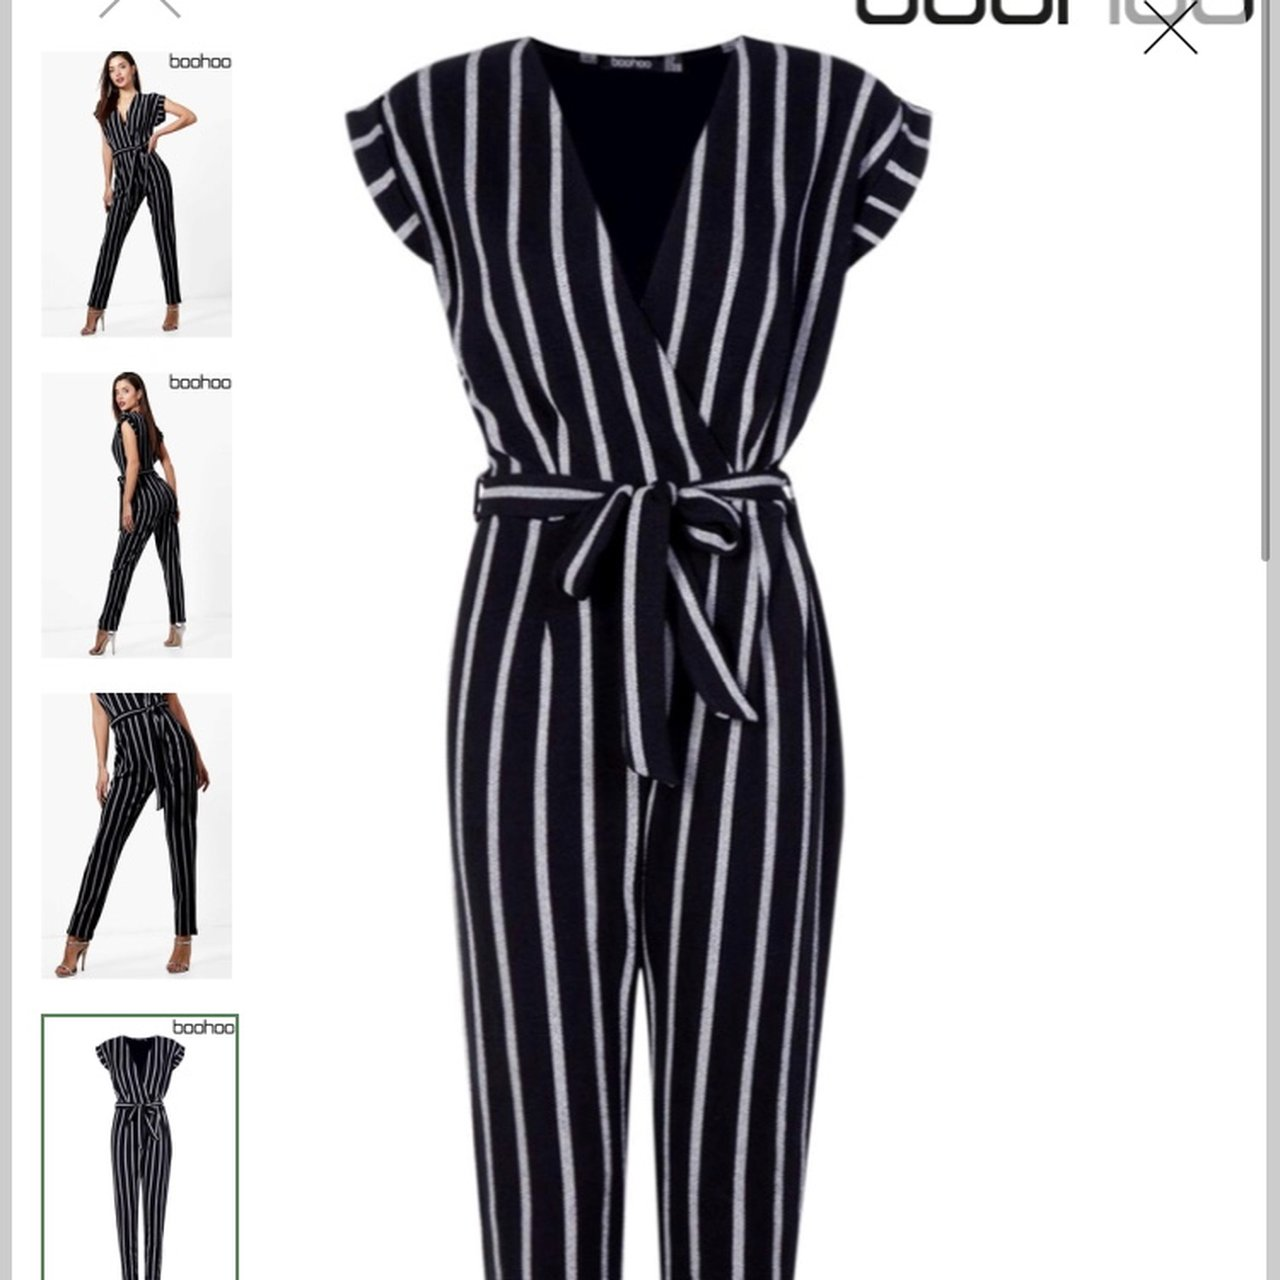 a0aa8d6fe733 Boohoo striped jumpsuit with tie belt Cigarette and white a - Depop